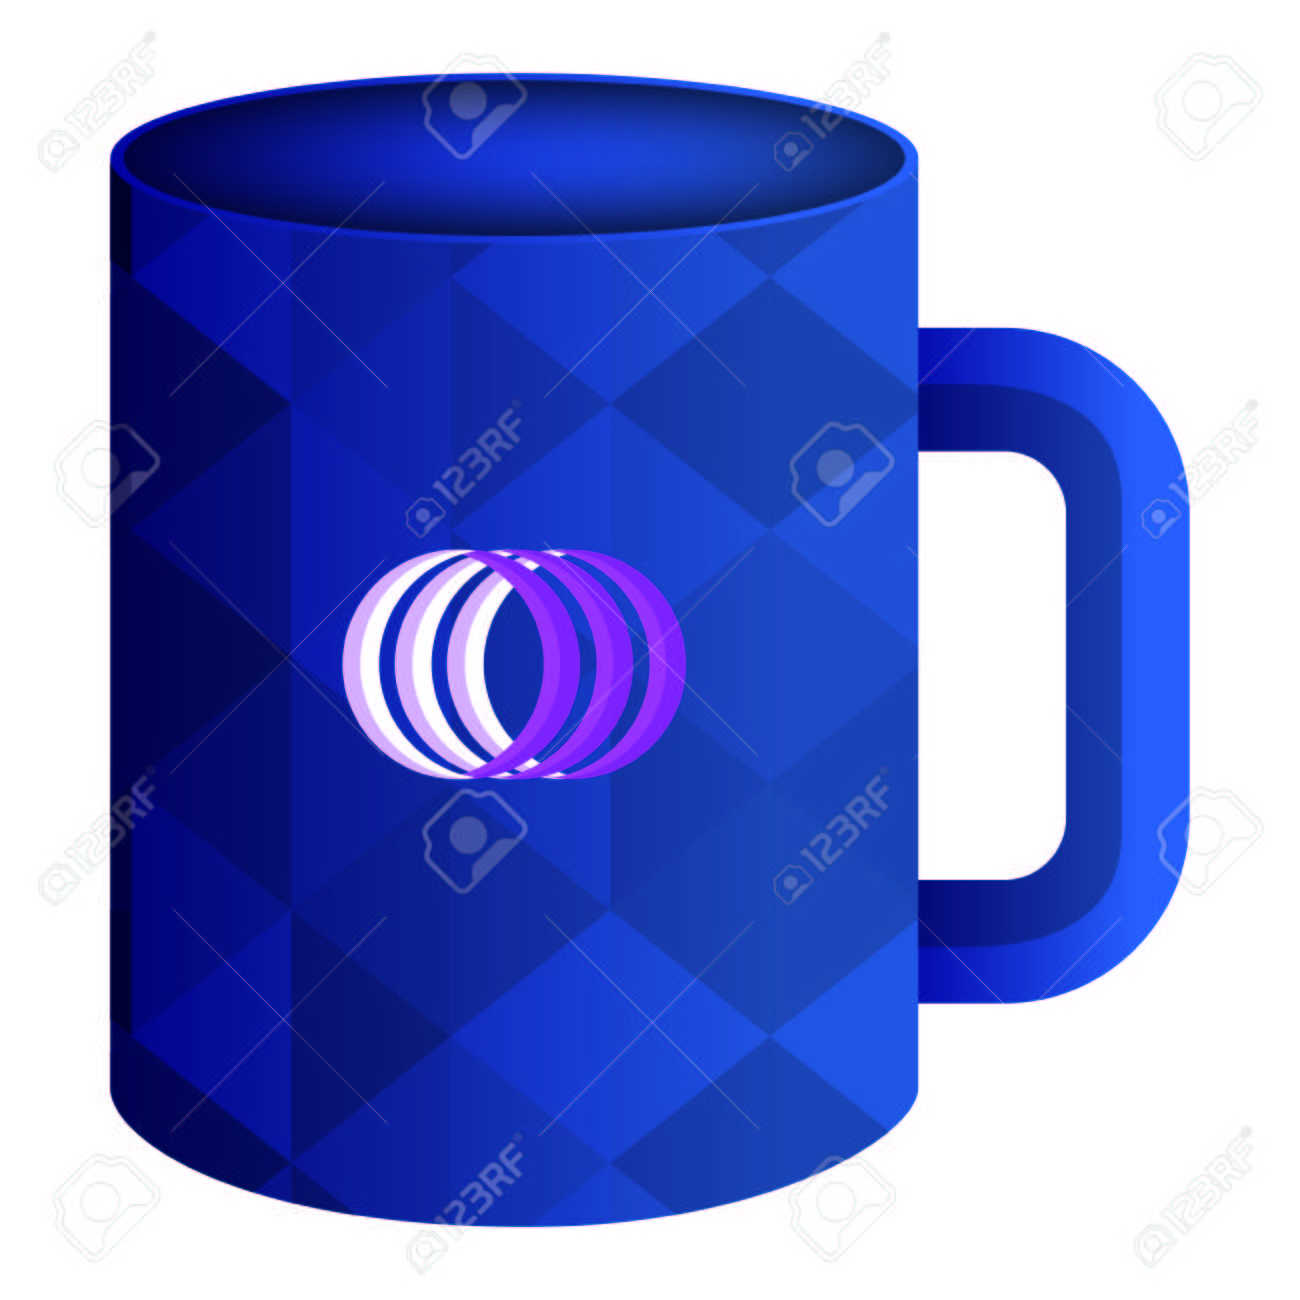 Corporate Company Mug Icon Vector Illustration Design Royalty Free Cliparts Vectors And Stock Illustration Image 99271359